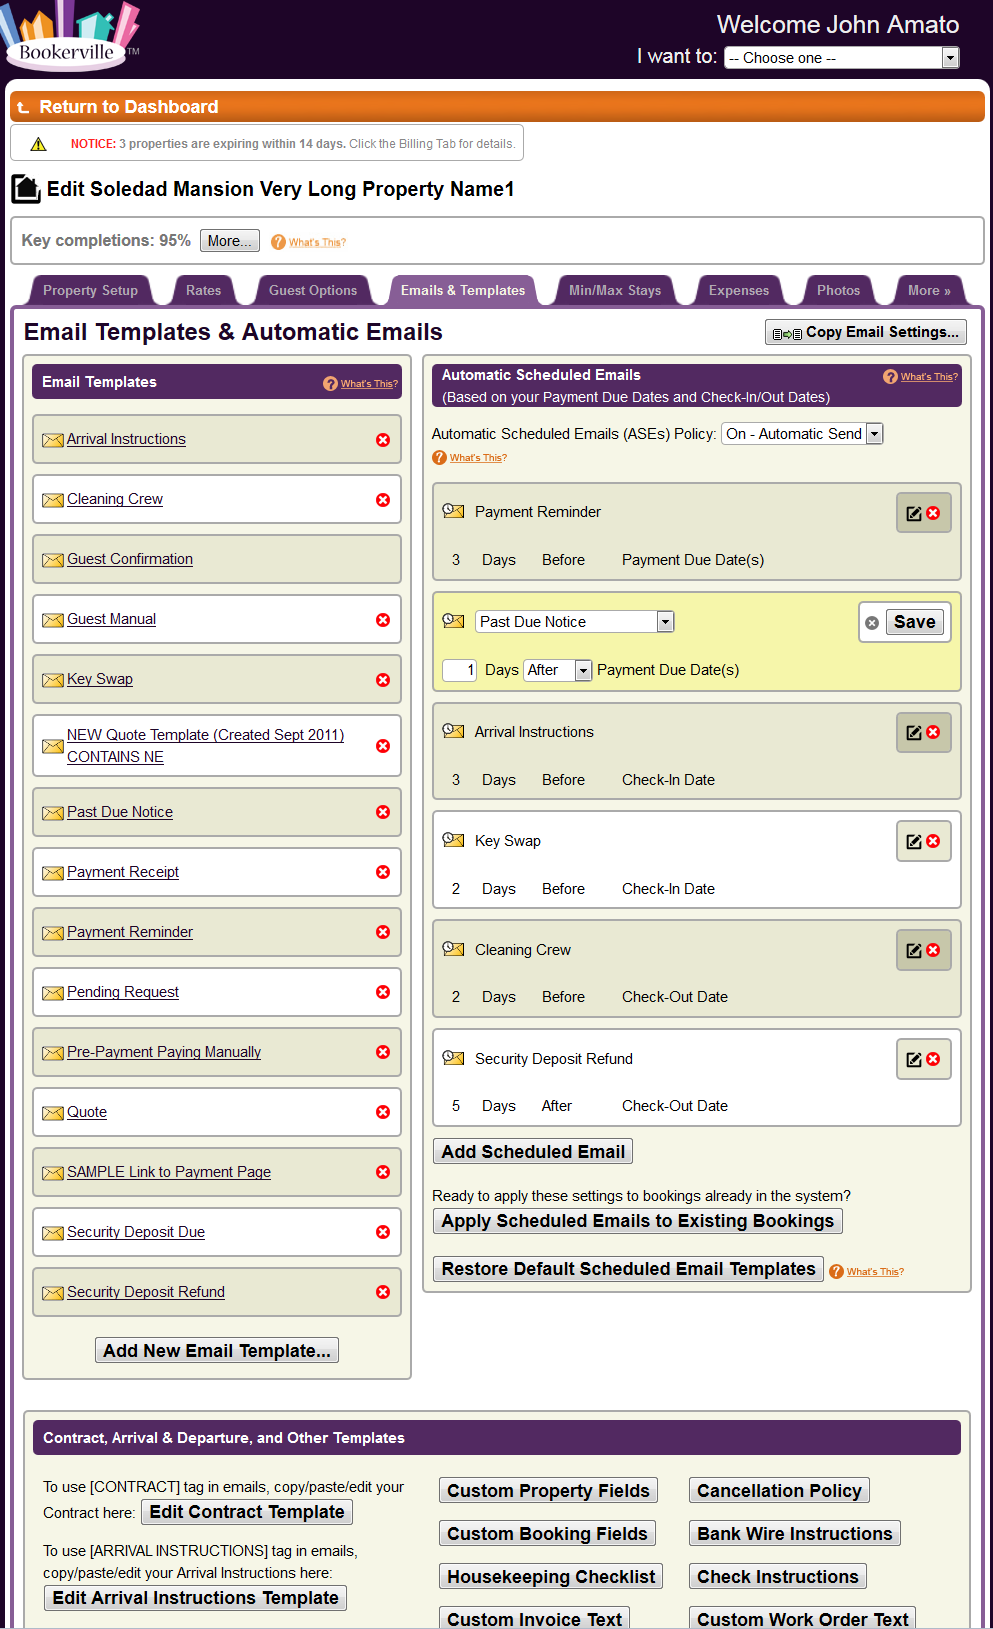 Automated, customizable email templates, scheduled to be sent to whom, and whenever you choose.